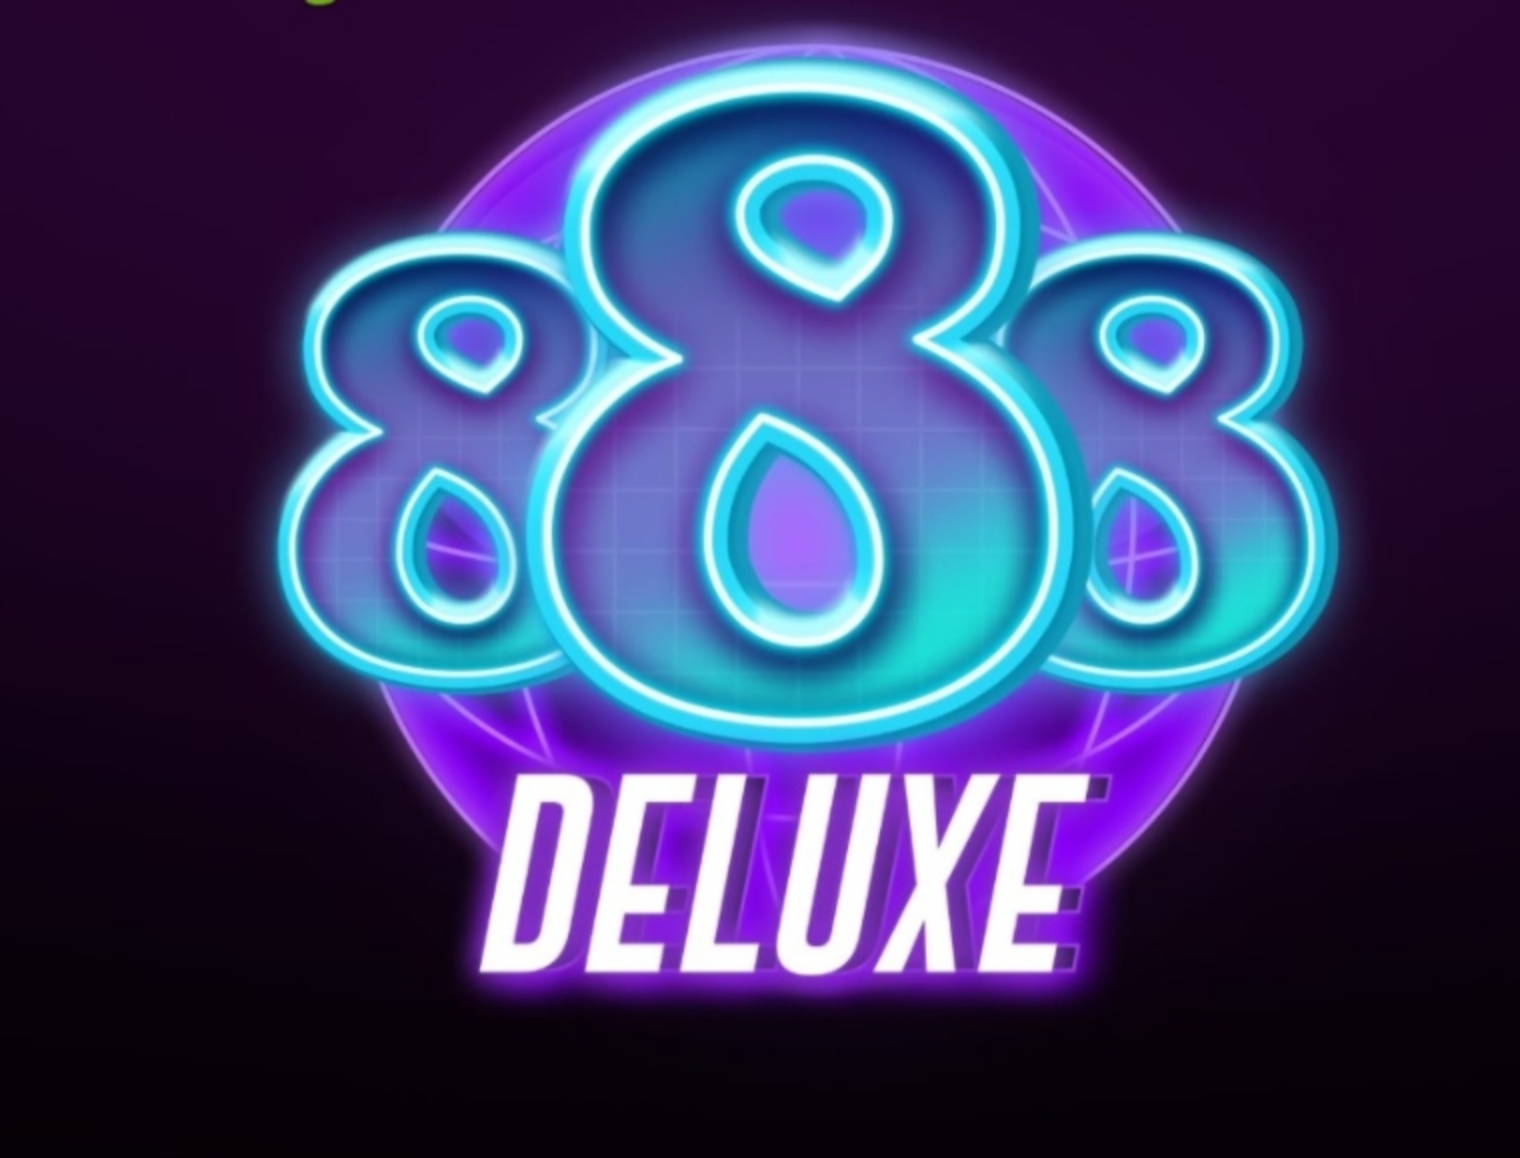 The 888 Deluxe Online Slot Demo Game by Woohoo